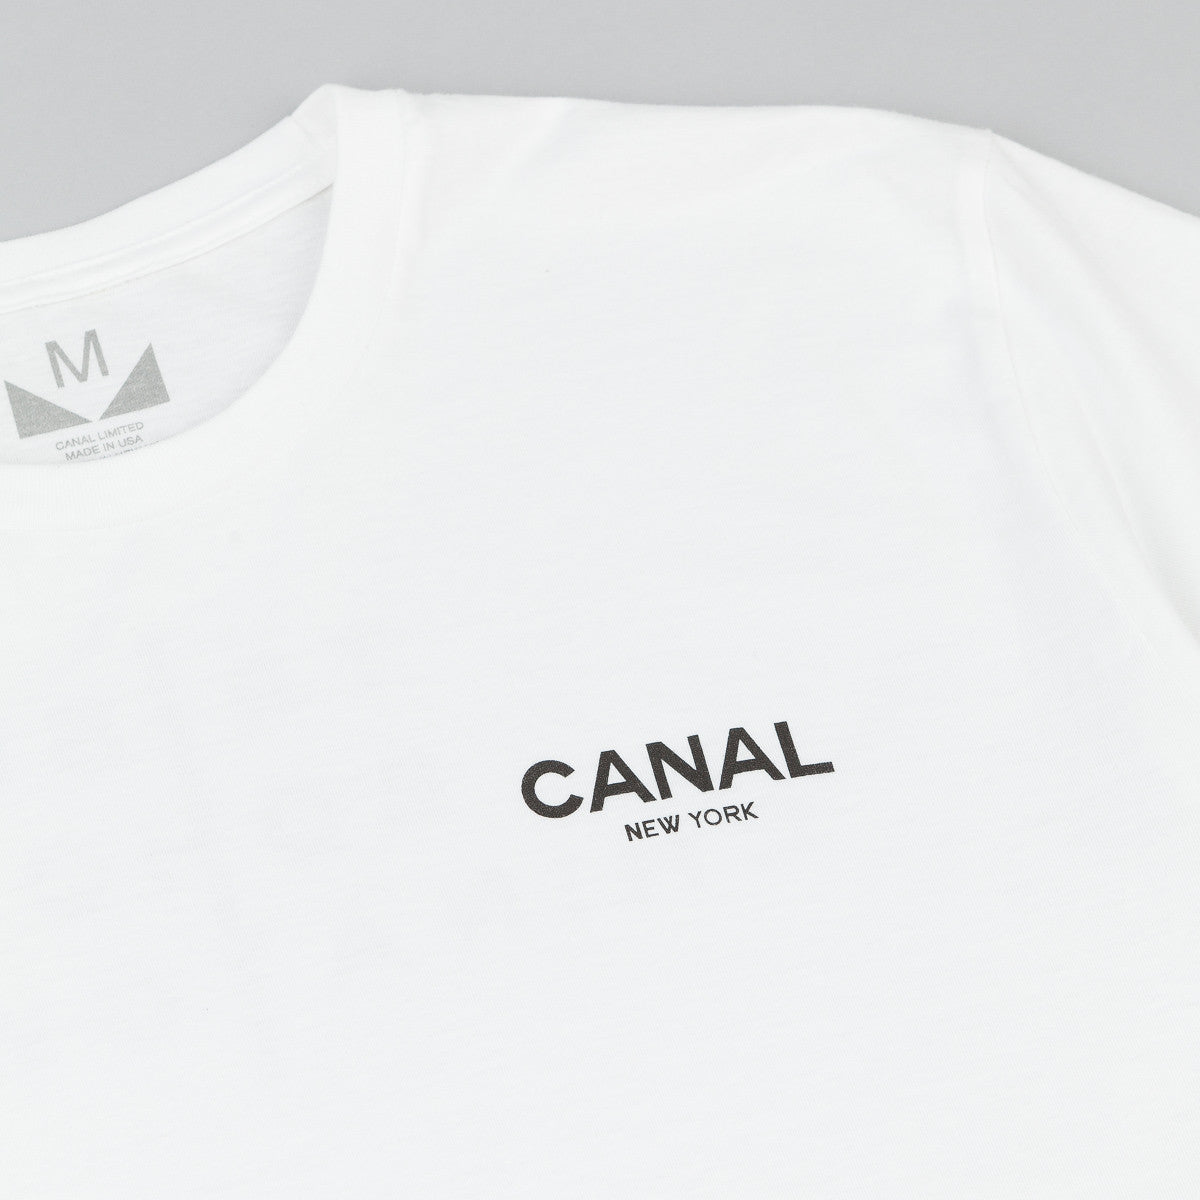 Canal New York Film Festival T-Shirt - White